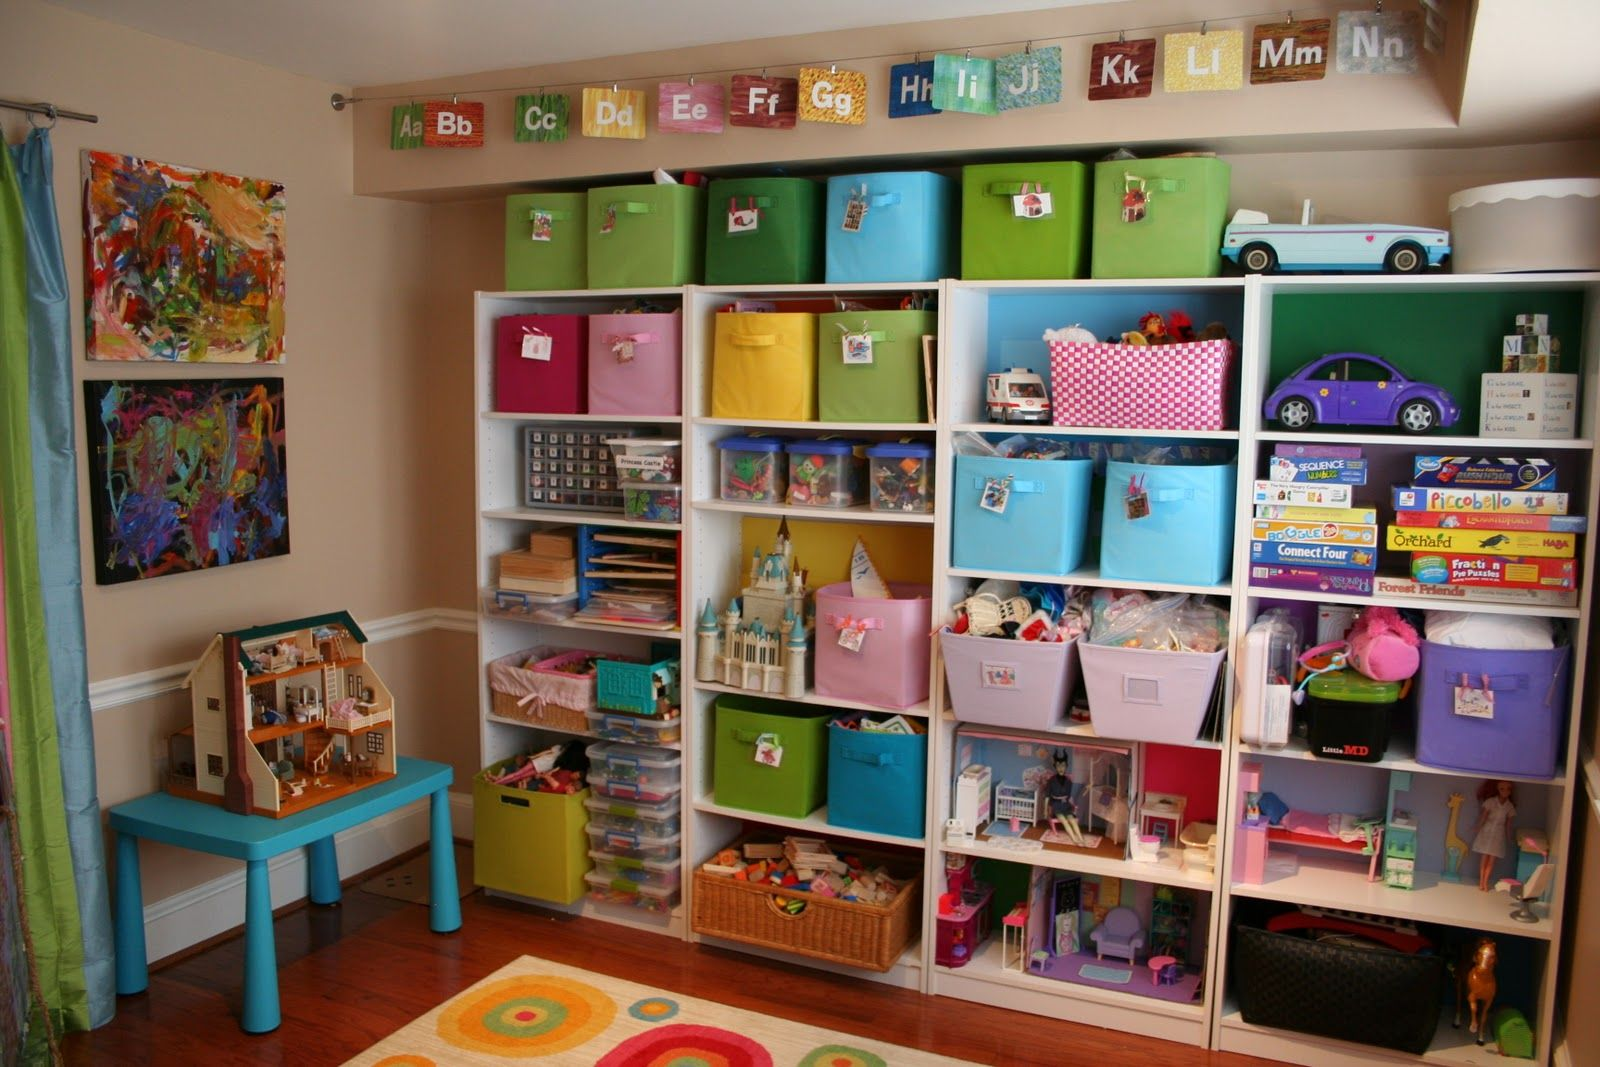 Toy Room Design Ideas Part - 33: We Have This Big Beautiful Formal Living Room Kidsu0027 Playroom In Our House.  Immediatly After We Moved In, I Found This Great Picture Of A Family Medu2026